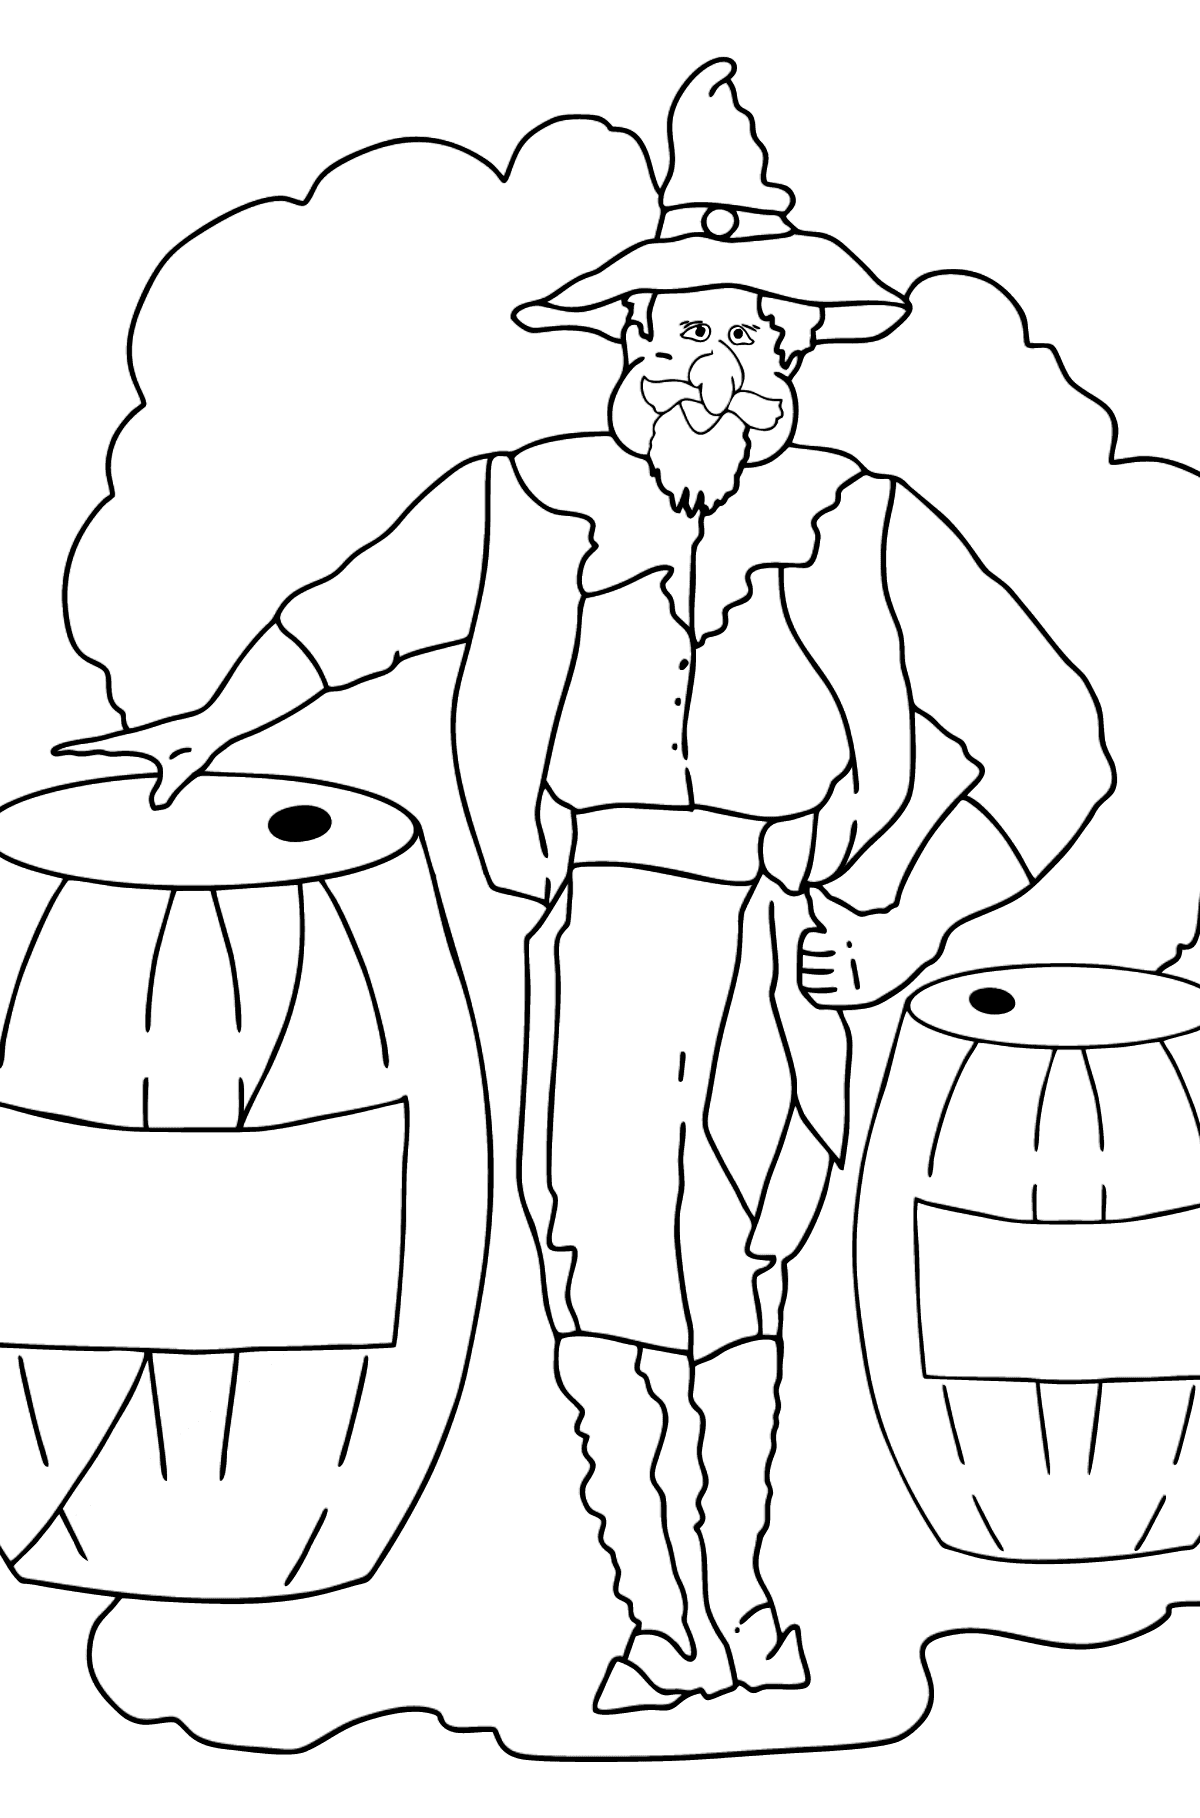 Coloring Page - A Pirate is Sharing Tasty Lemonade with the Crew - Coloring Pages for Kids